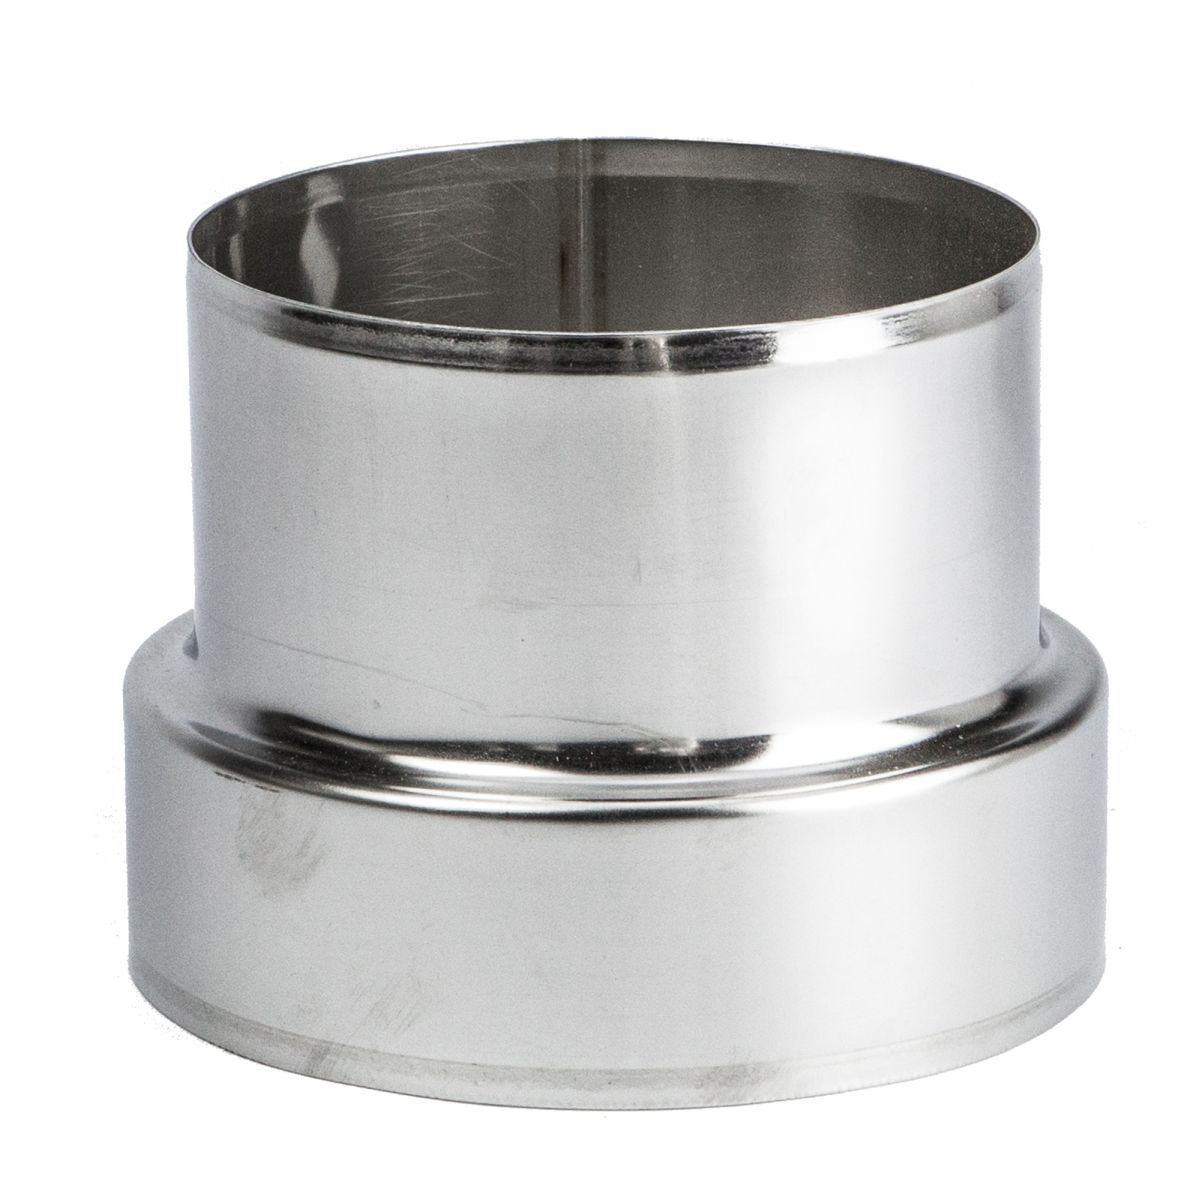 Stainless steel pipe connector adaptor chimney flue liner Liner 5 50 x 1 32